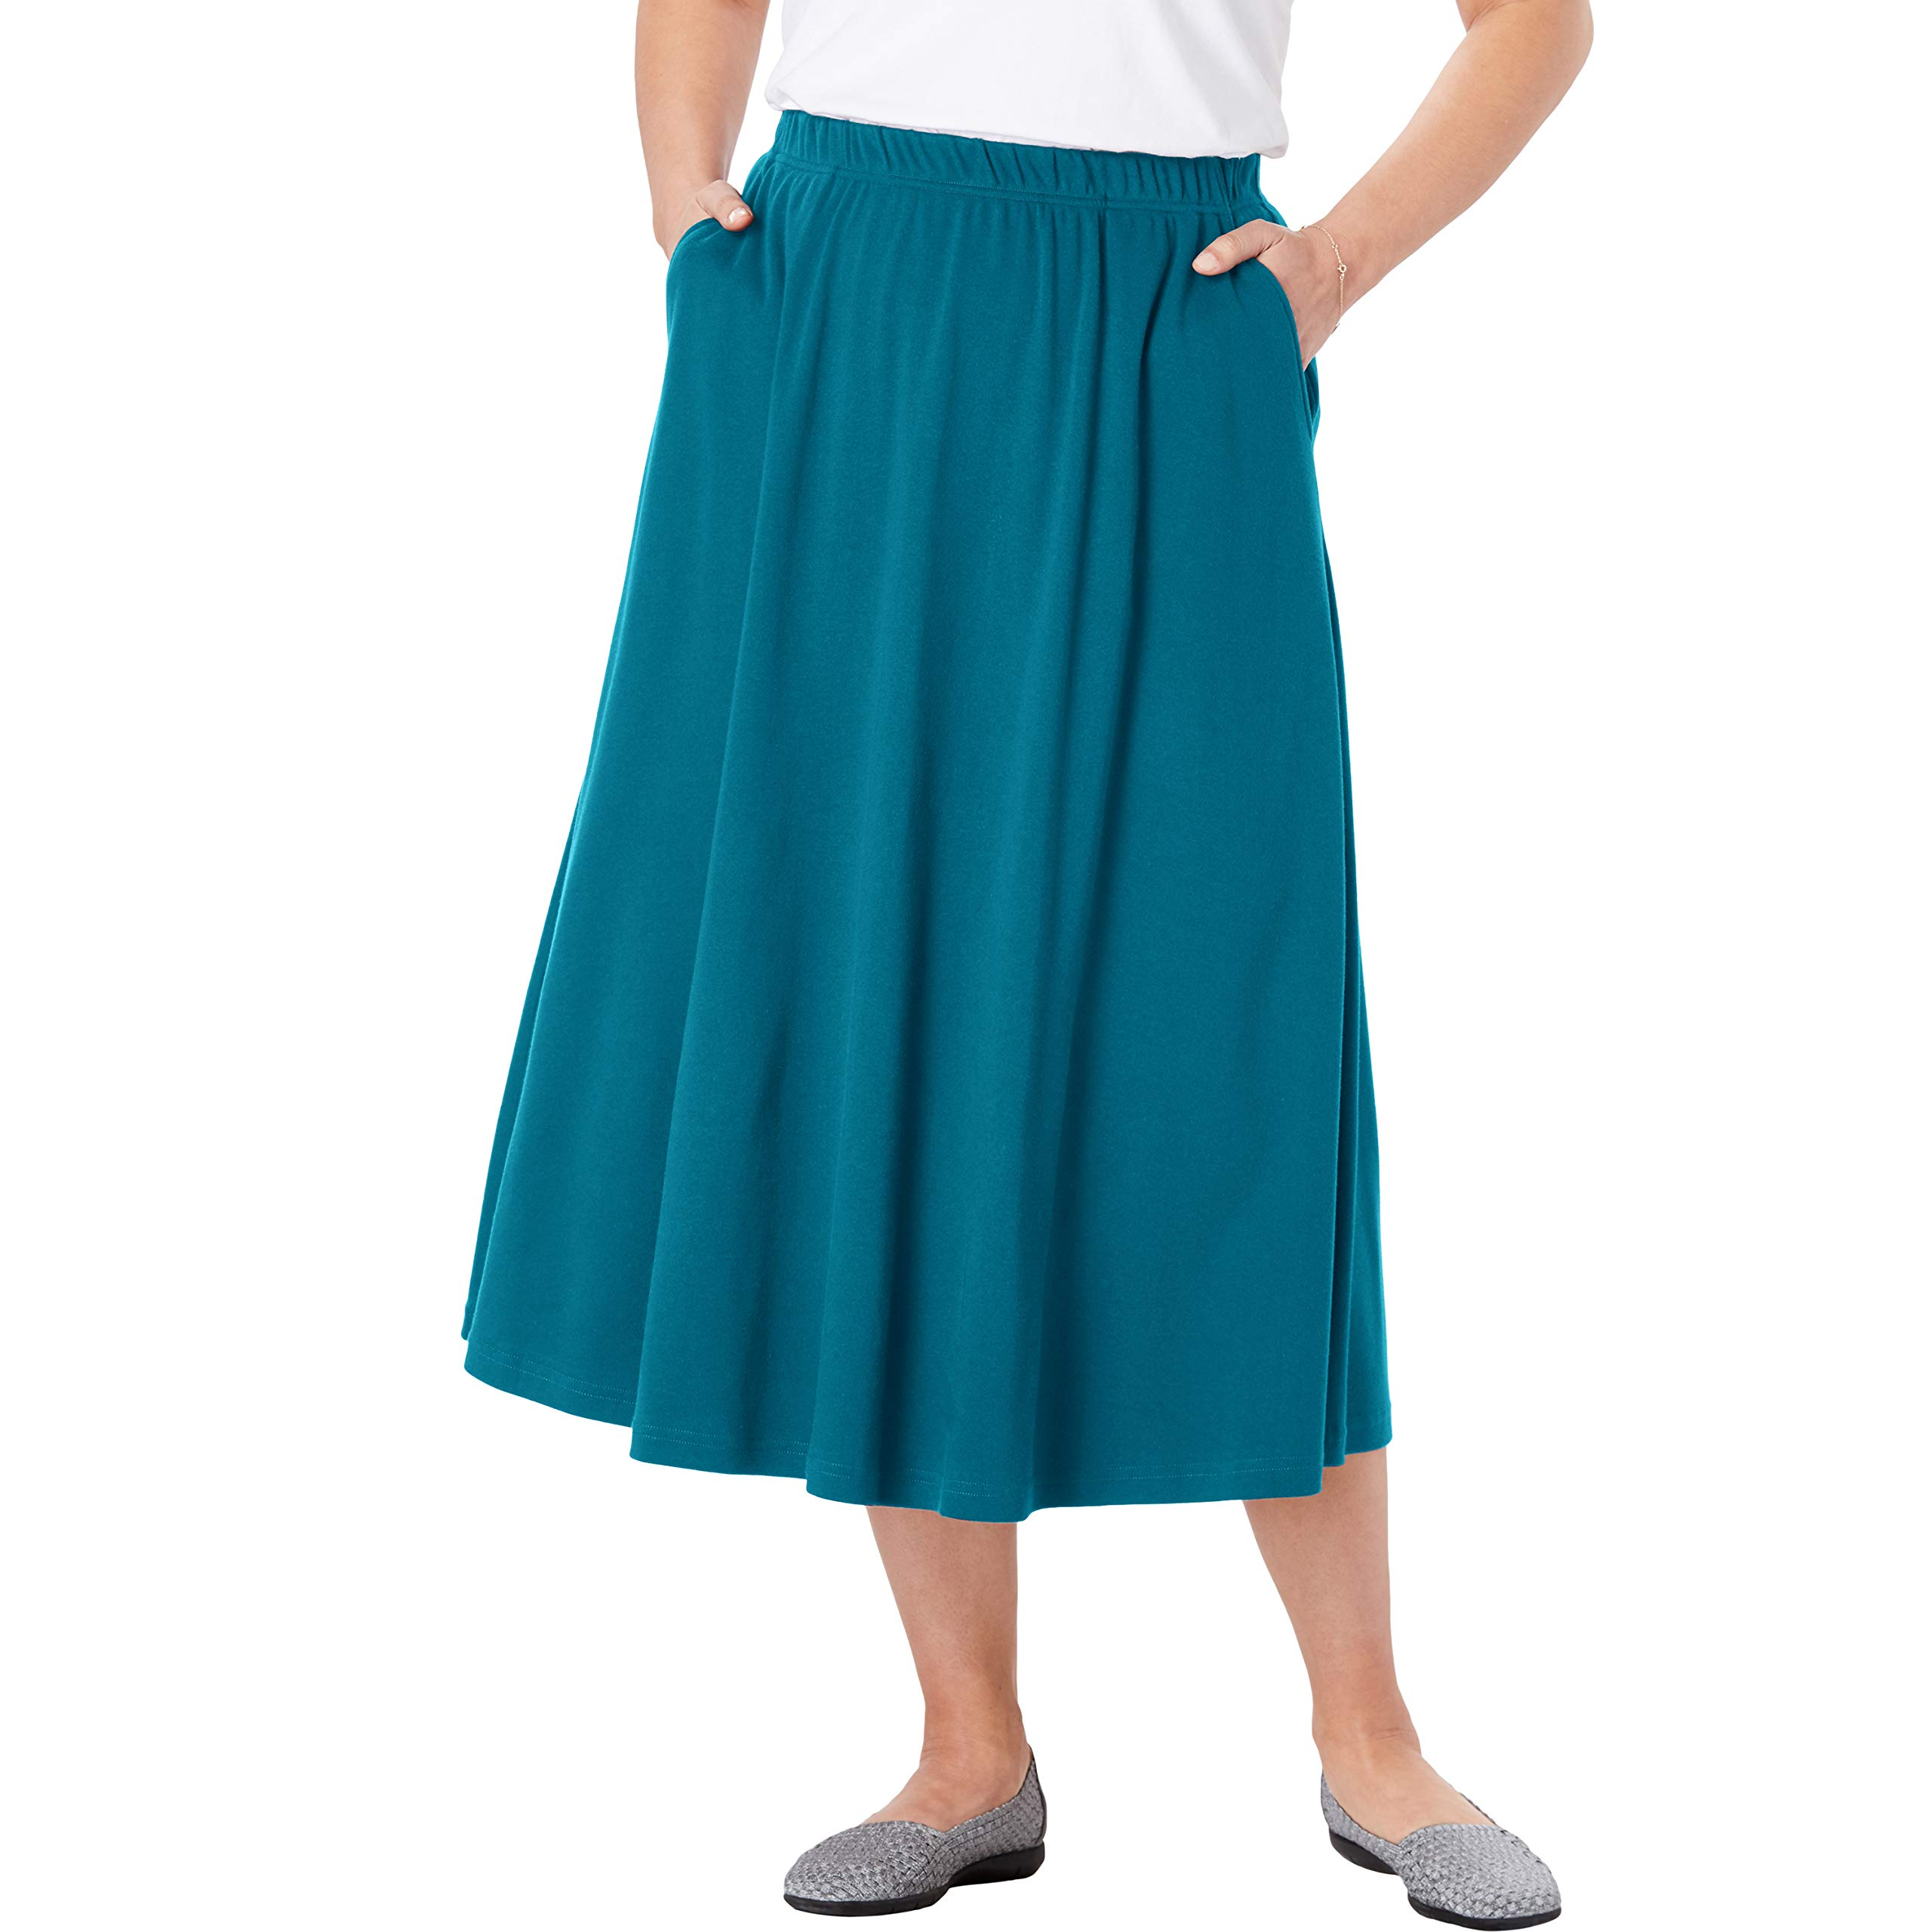 Woman Within Women's Plus Size Petite 7-Day Knit A-Line Skirt - Deep Teal, 1XP by Woman Within